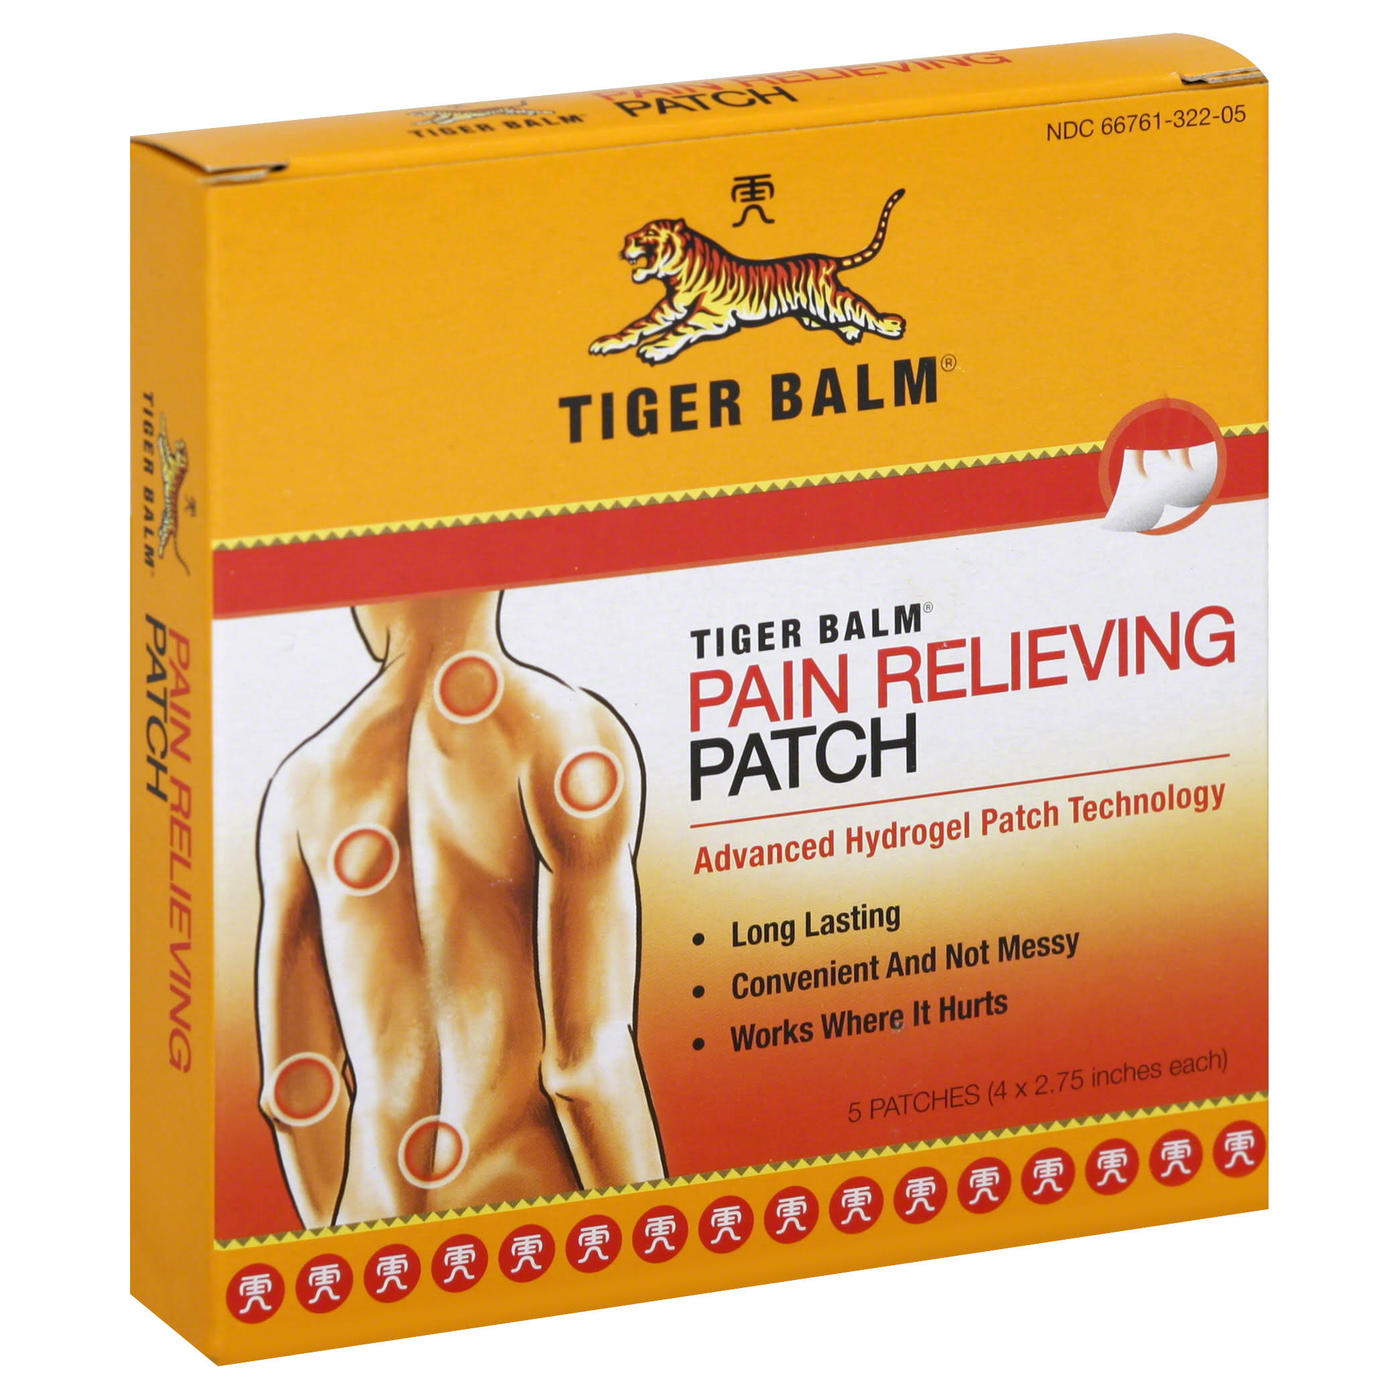 Tiger Balm Pain Relieving Patches – 5 Patches